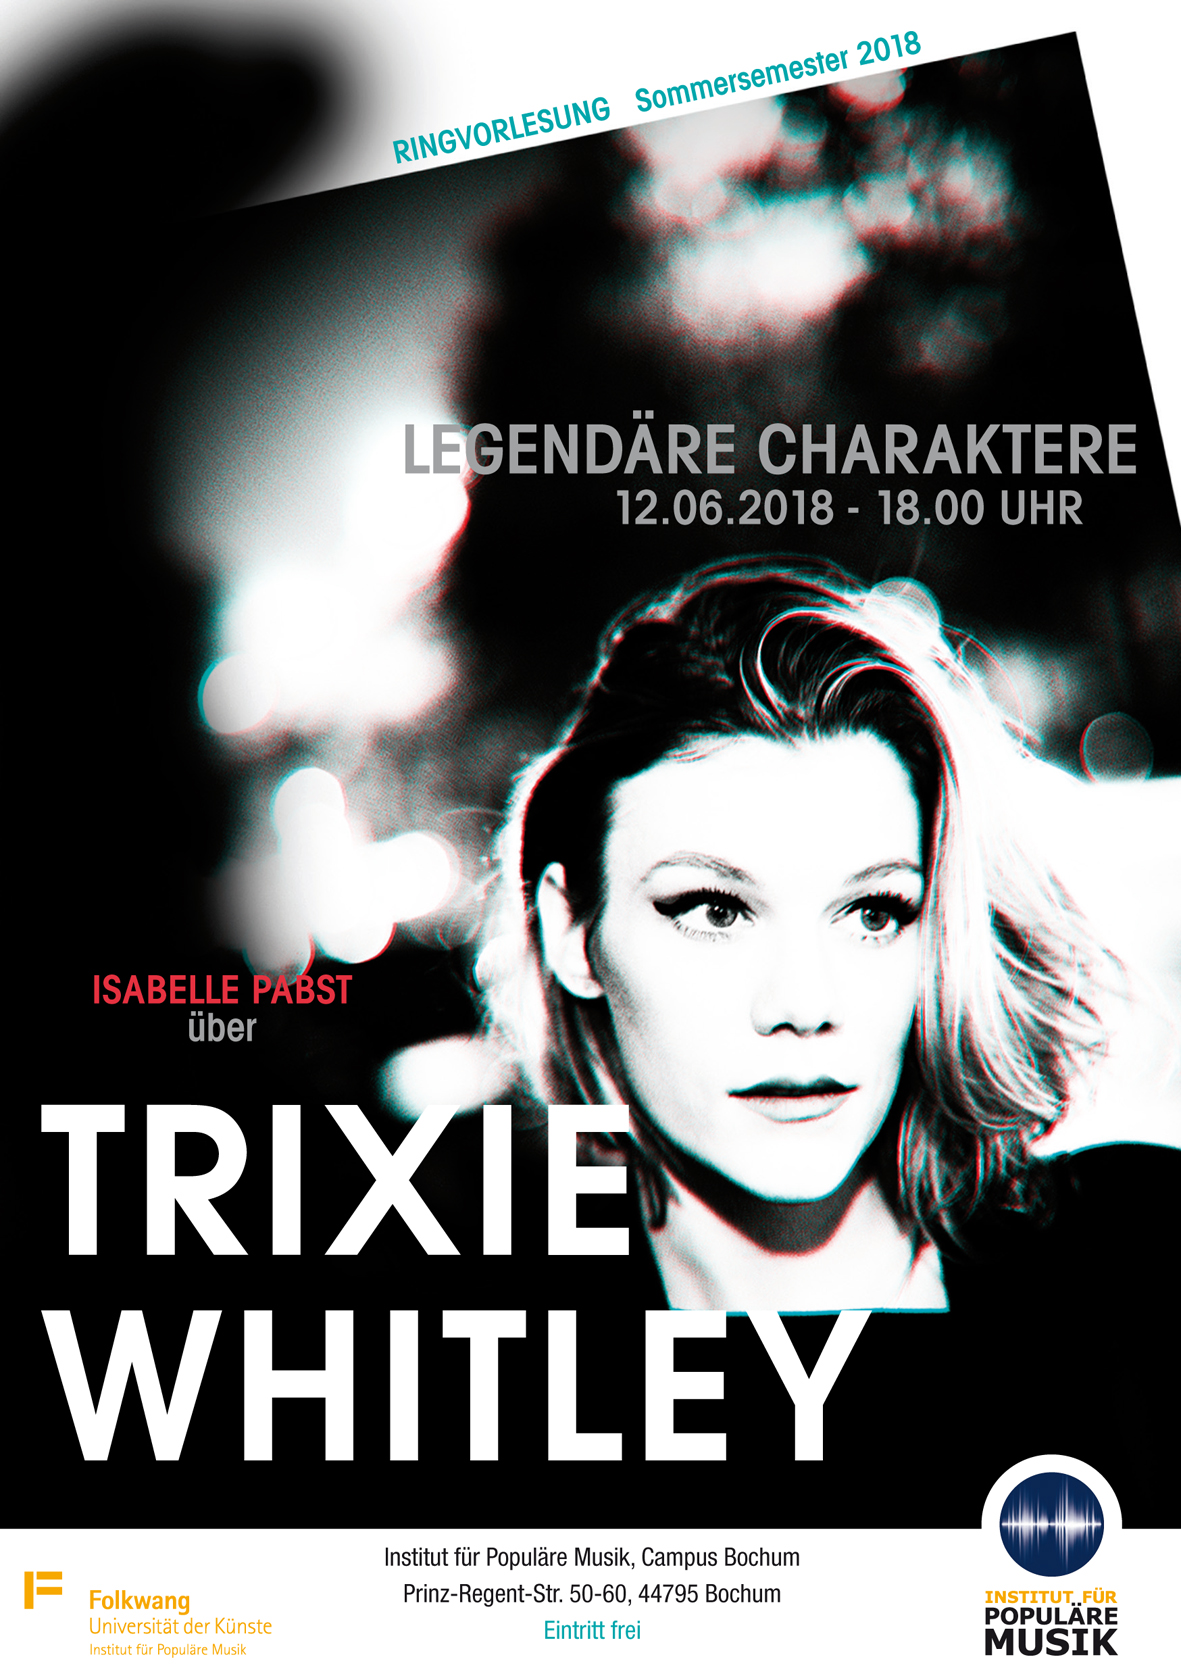 Isabelle Pabst über Trixie Whitley